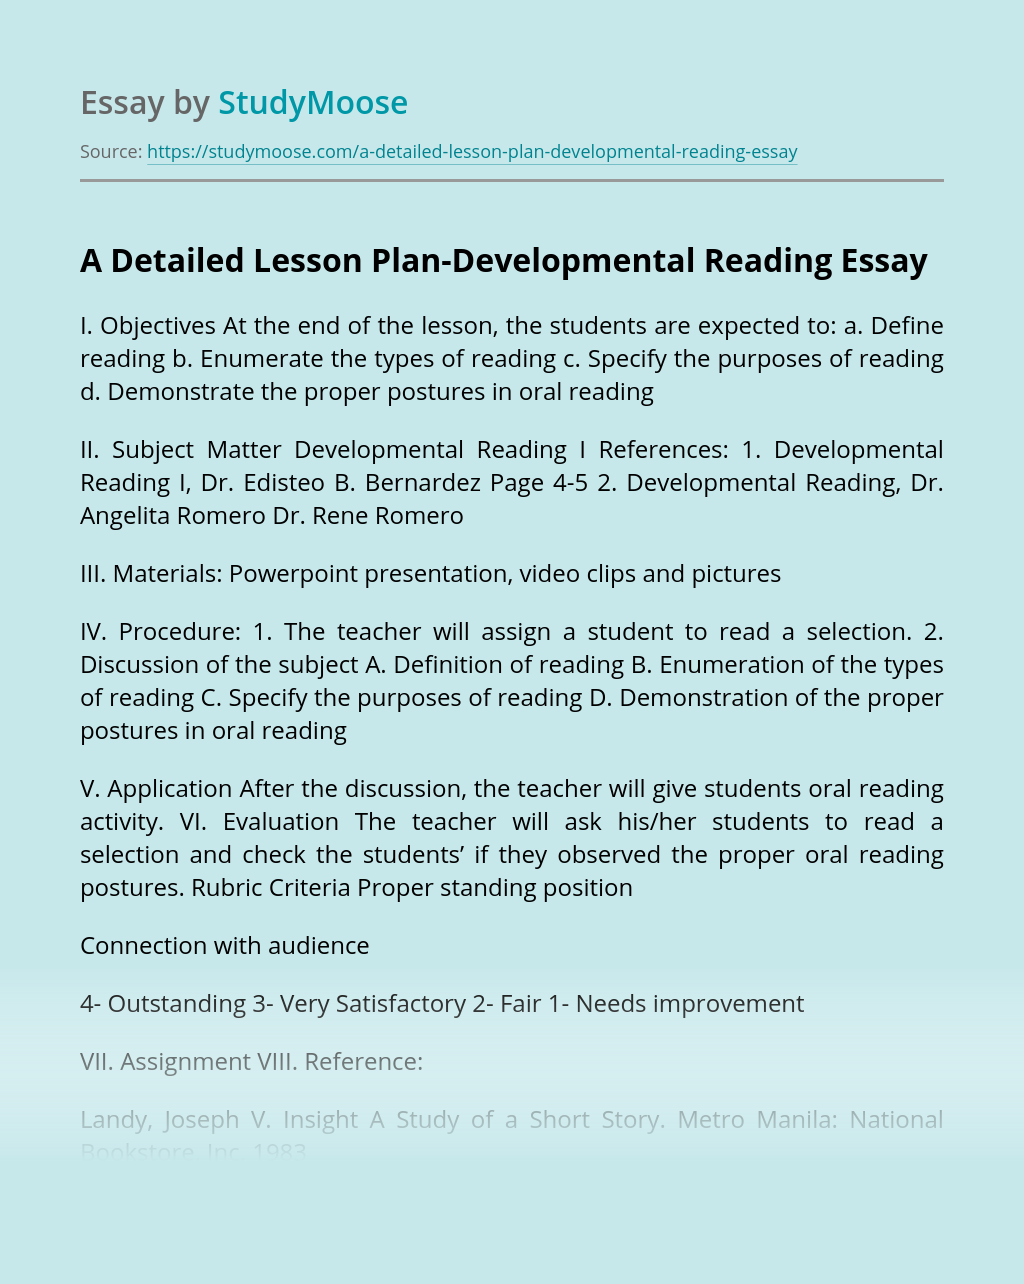 A Detailed Lesson Plan-Developmental Reading